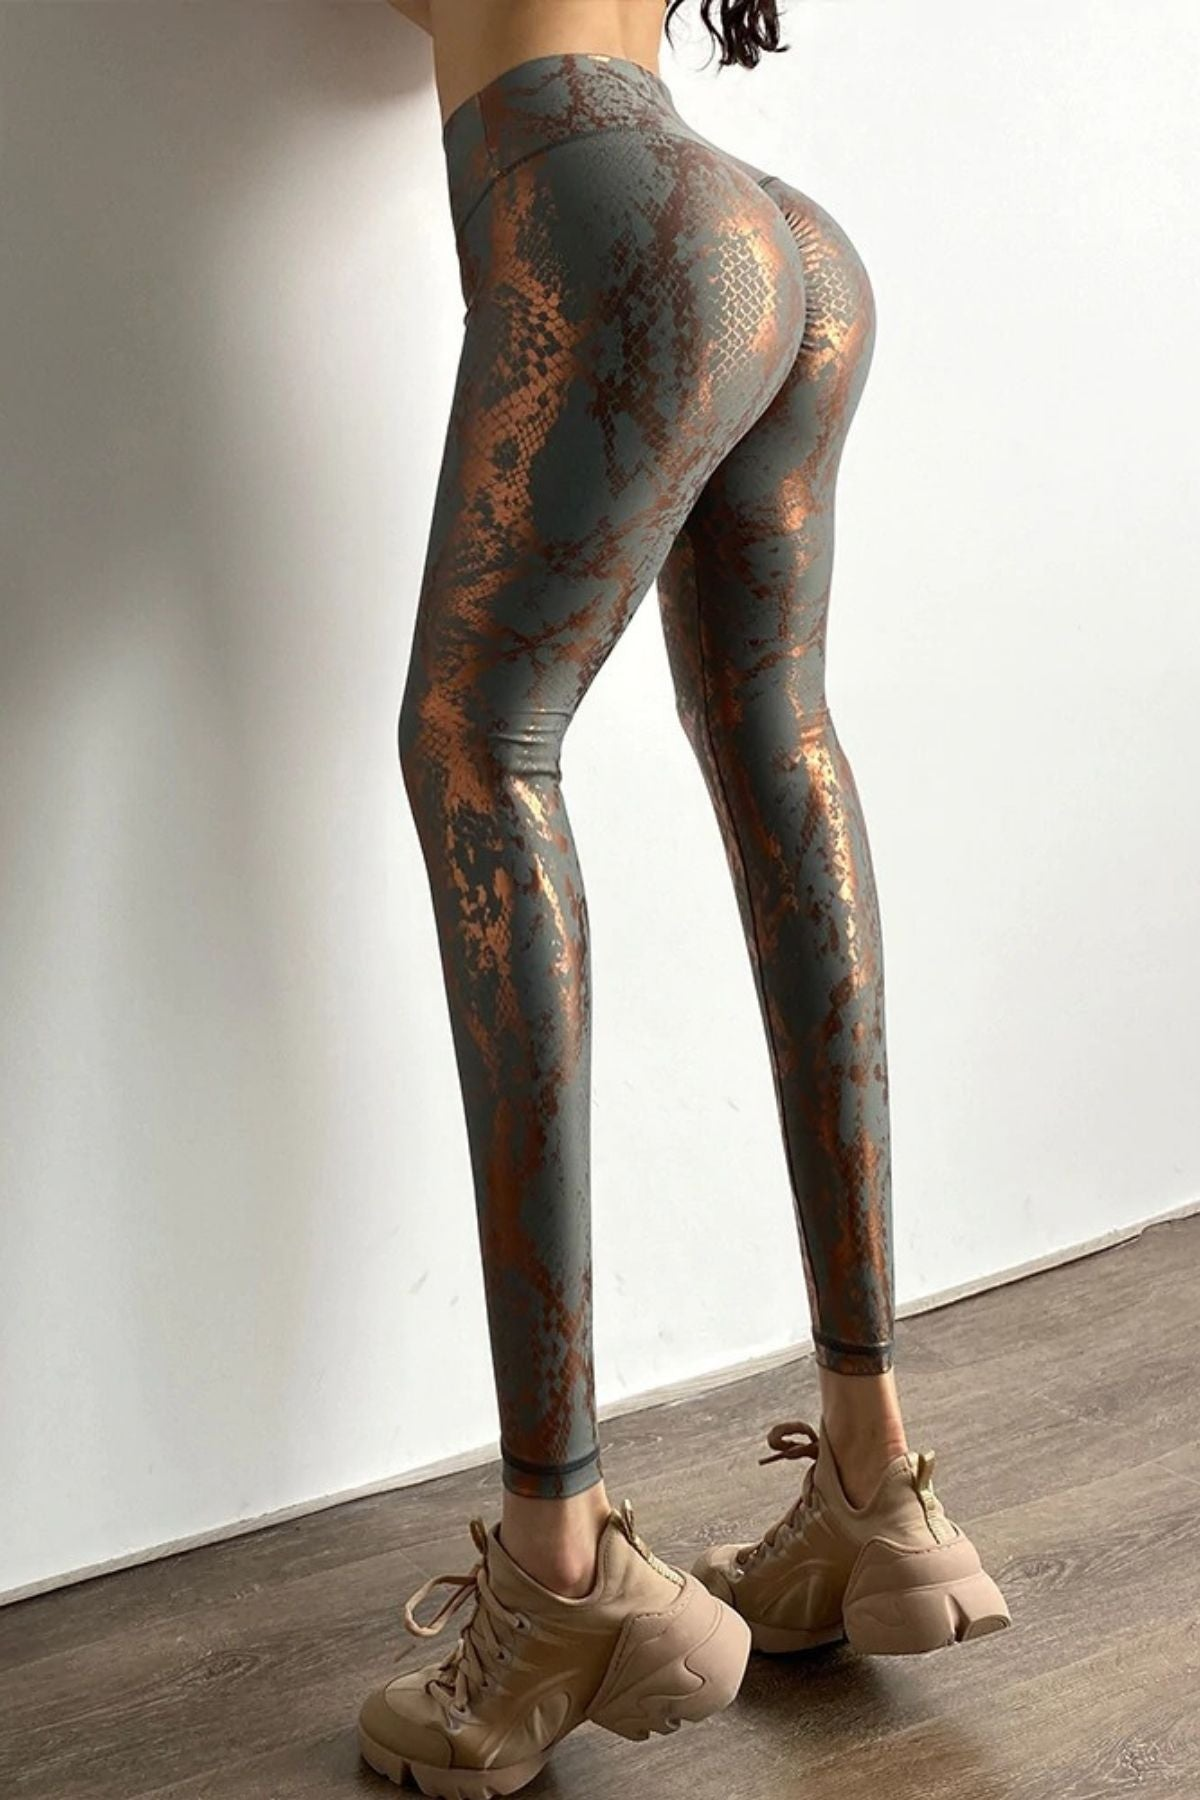 Women's Sexy Tight Grey Snakeskin Print Legging With High Waisted Fit And Shiny Metallic Color